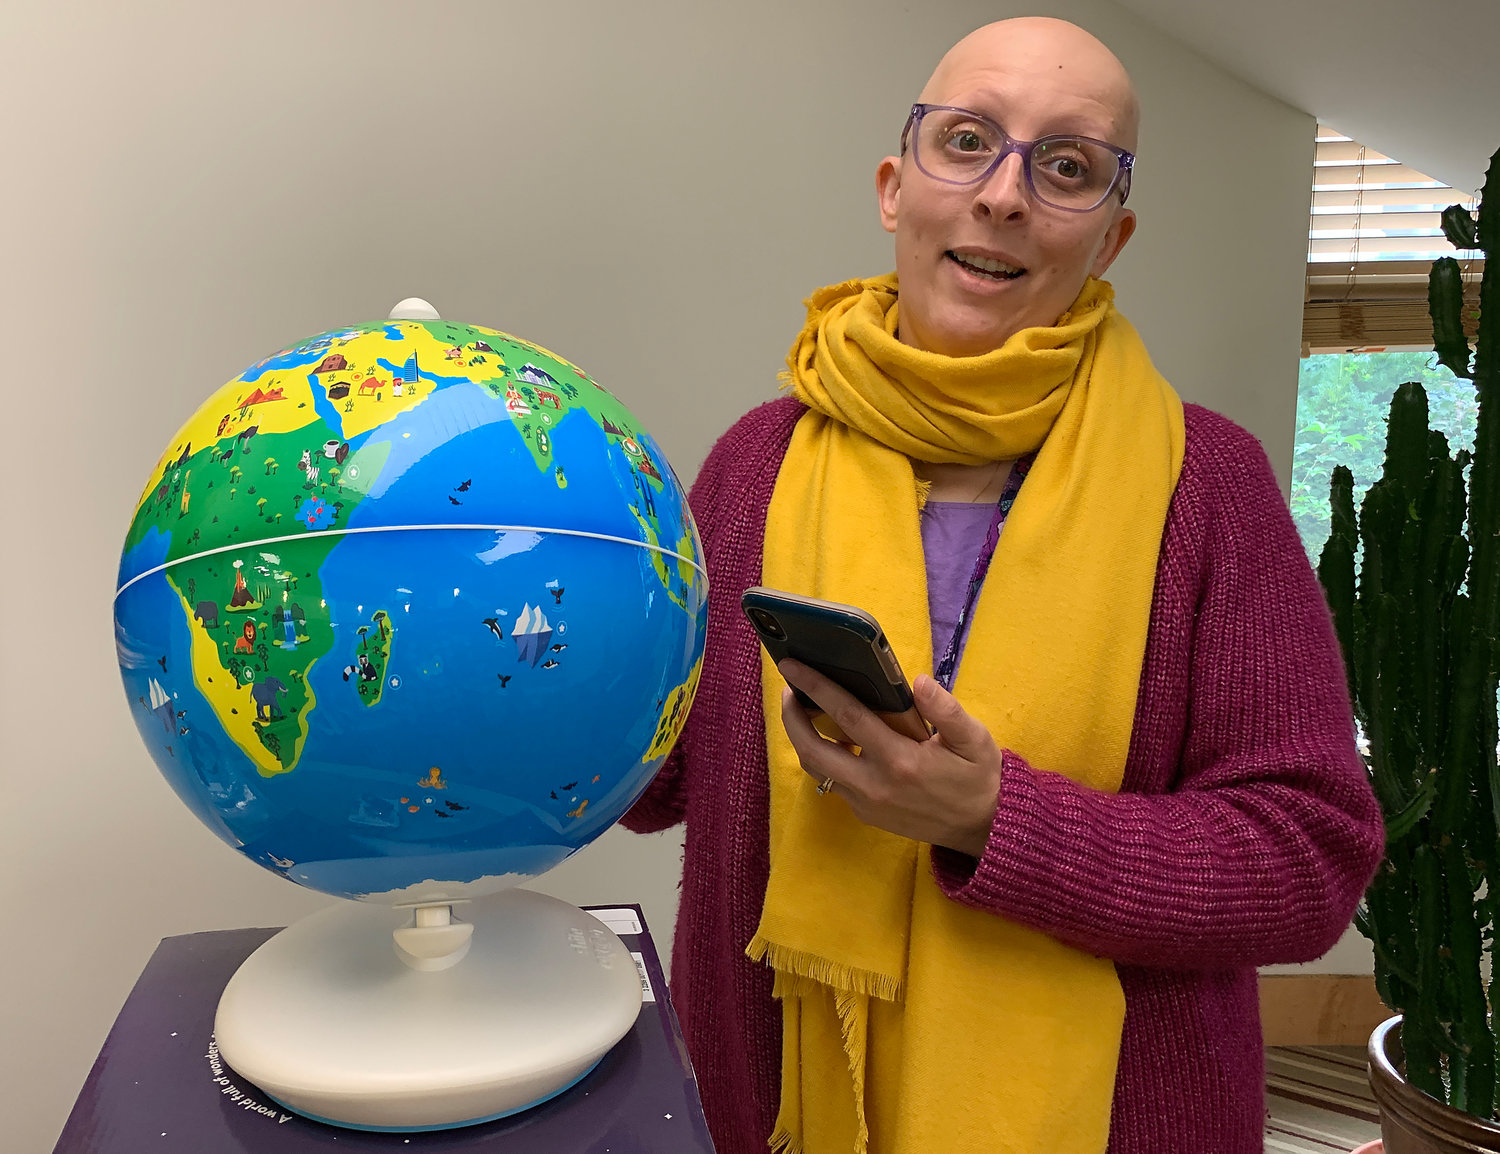 Kristin Amaral shows off Rogers Free Library's new augmented reality globe, which works with a phone app and lets users learn about various cities and countries when they point to a location on the sphere.